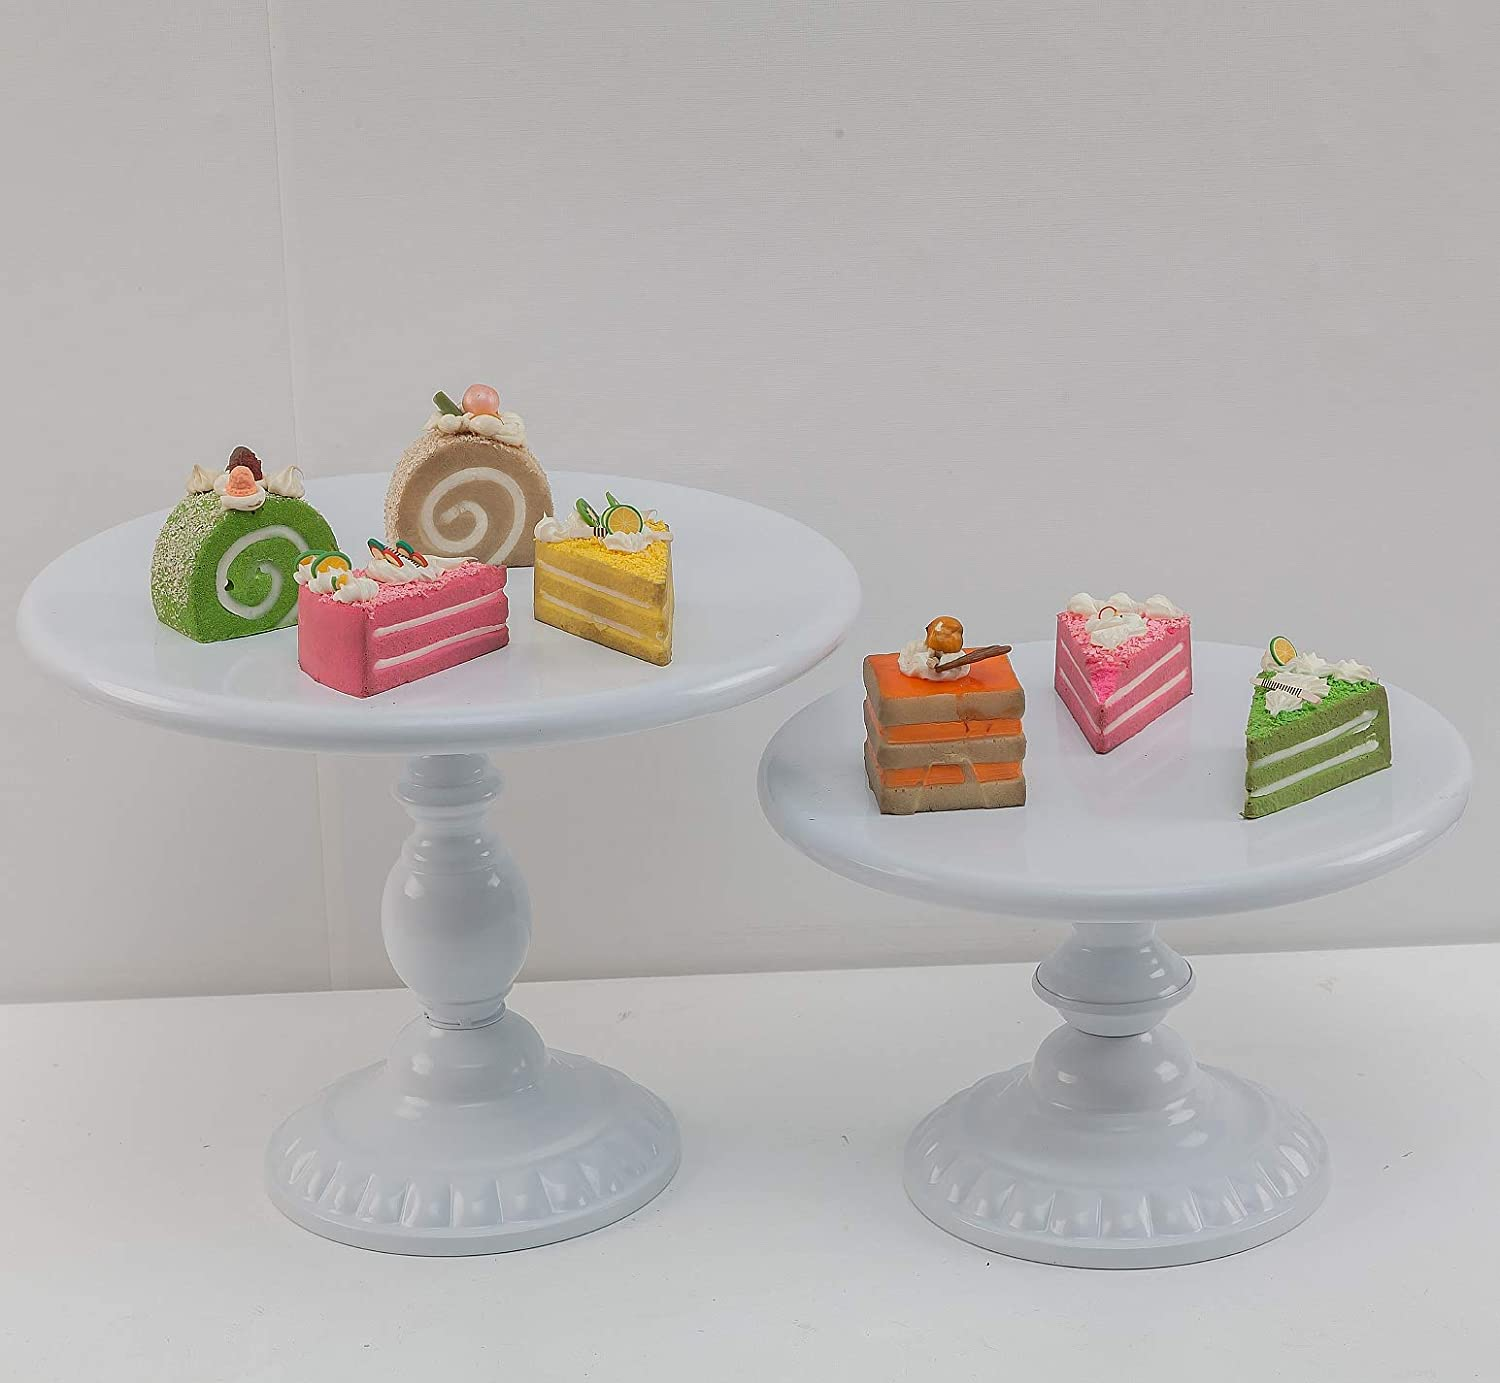 Cake Plate Cake Stands Gold Cake Stand,Round Metal Antique Cupcake Holder,Dessert Cupcake Stand//Display//Plate for Wedding Birthday/&Party